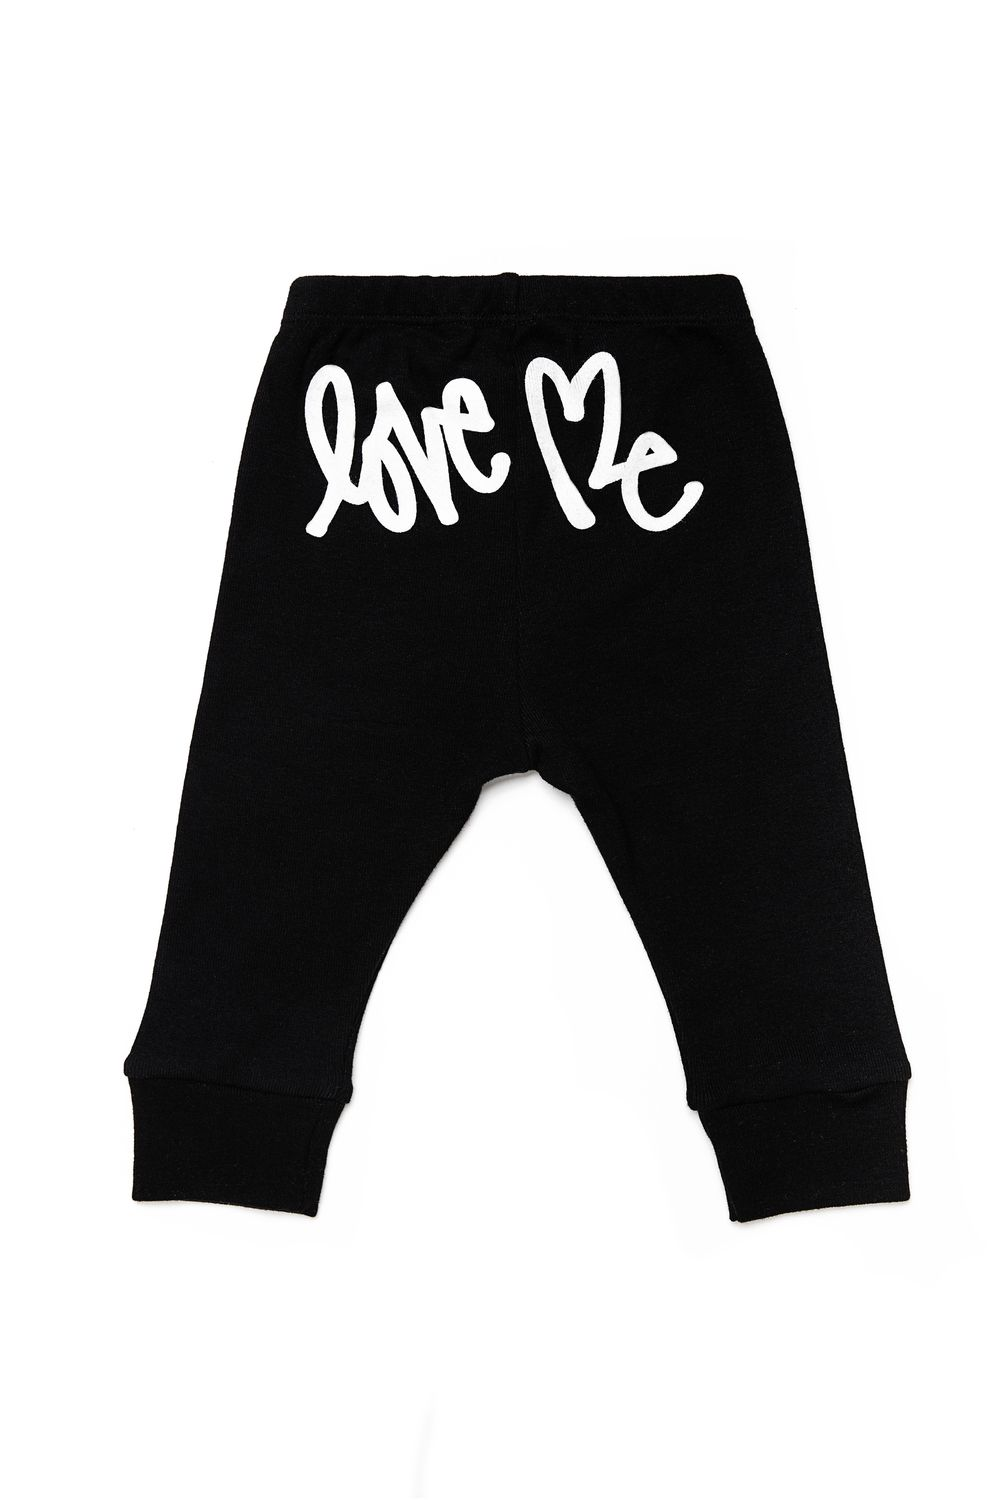 CLASSIC WHITE LOGO LEGGING 45.00 As you chase your little ripper around the house, keep your eyes on the prize: the Love Me logo across the bum.   lightweight leggings with logo on bum elastic waistband and cuffs unisex made in America 100% super-soft cotton  machine washable; dryer-friendly